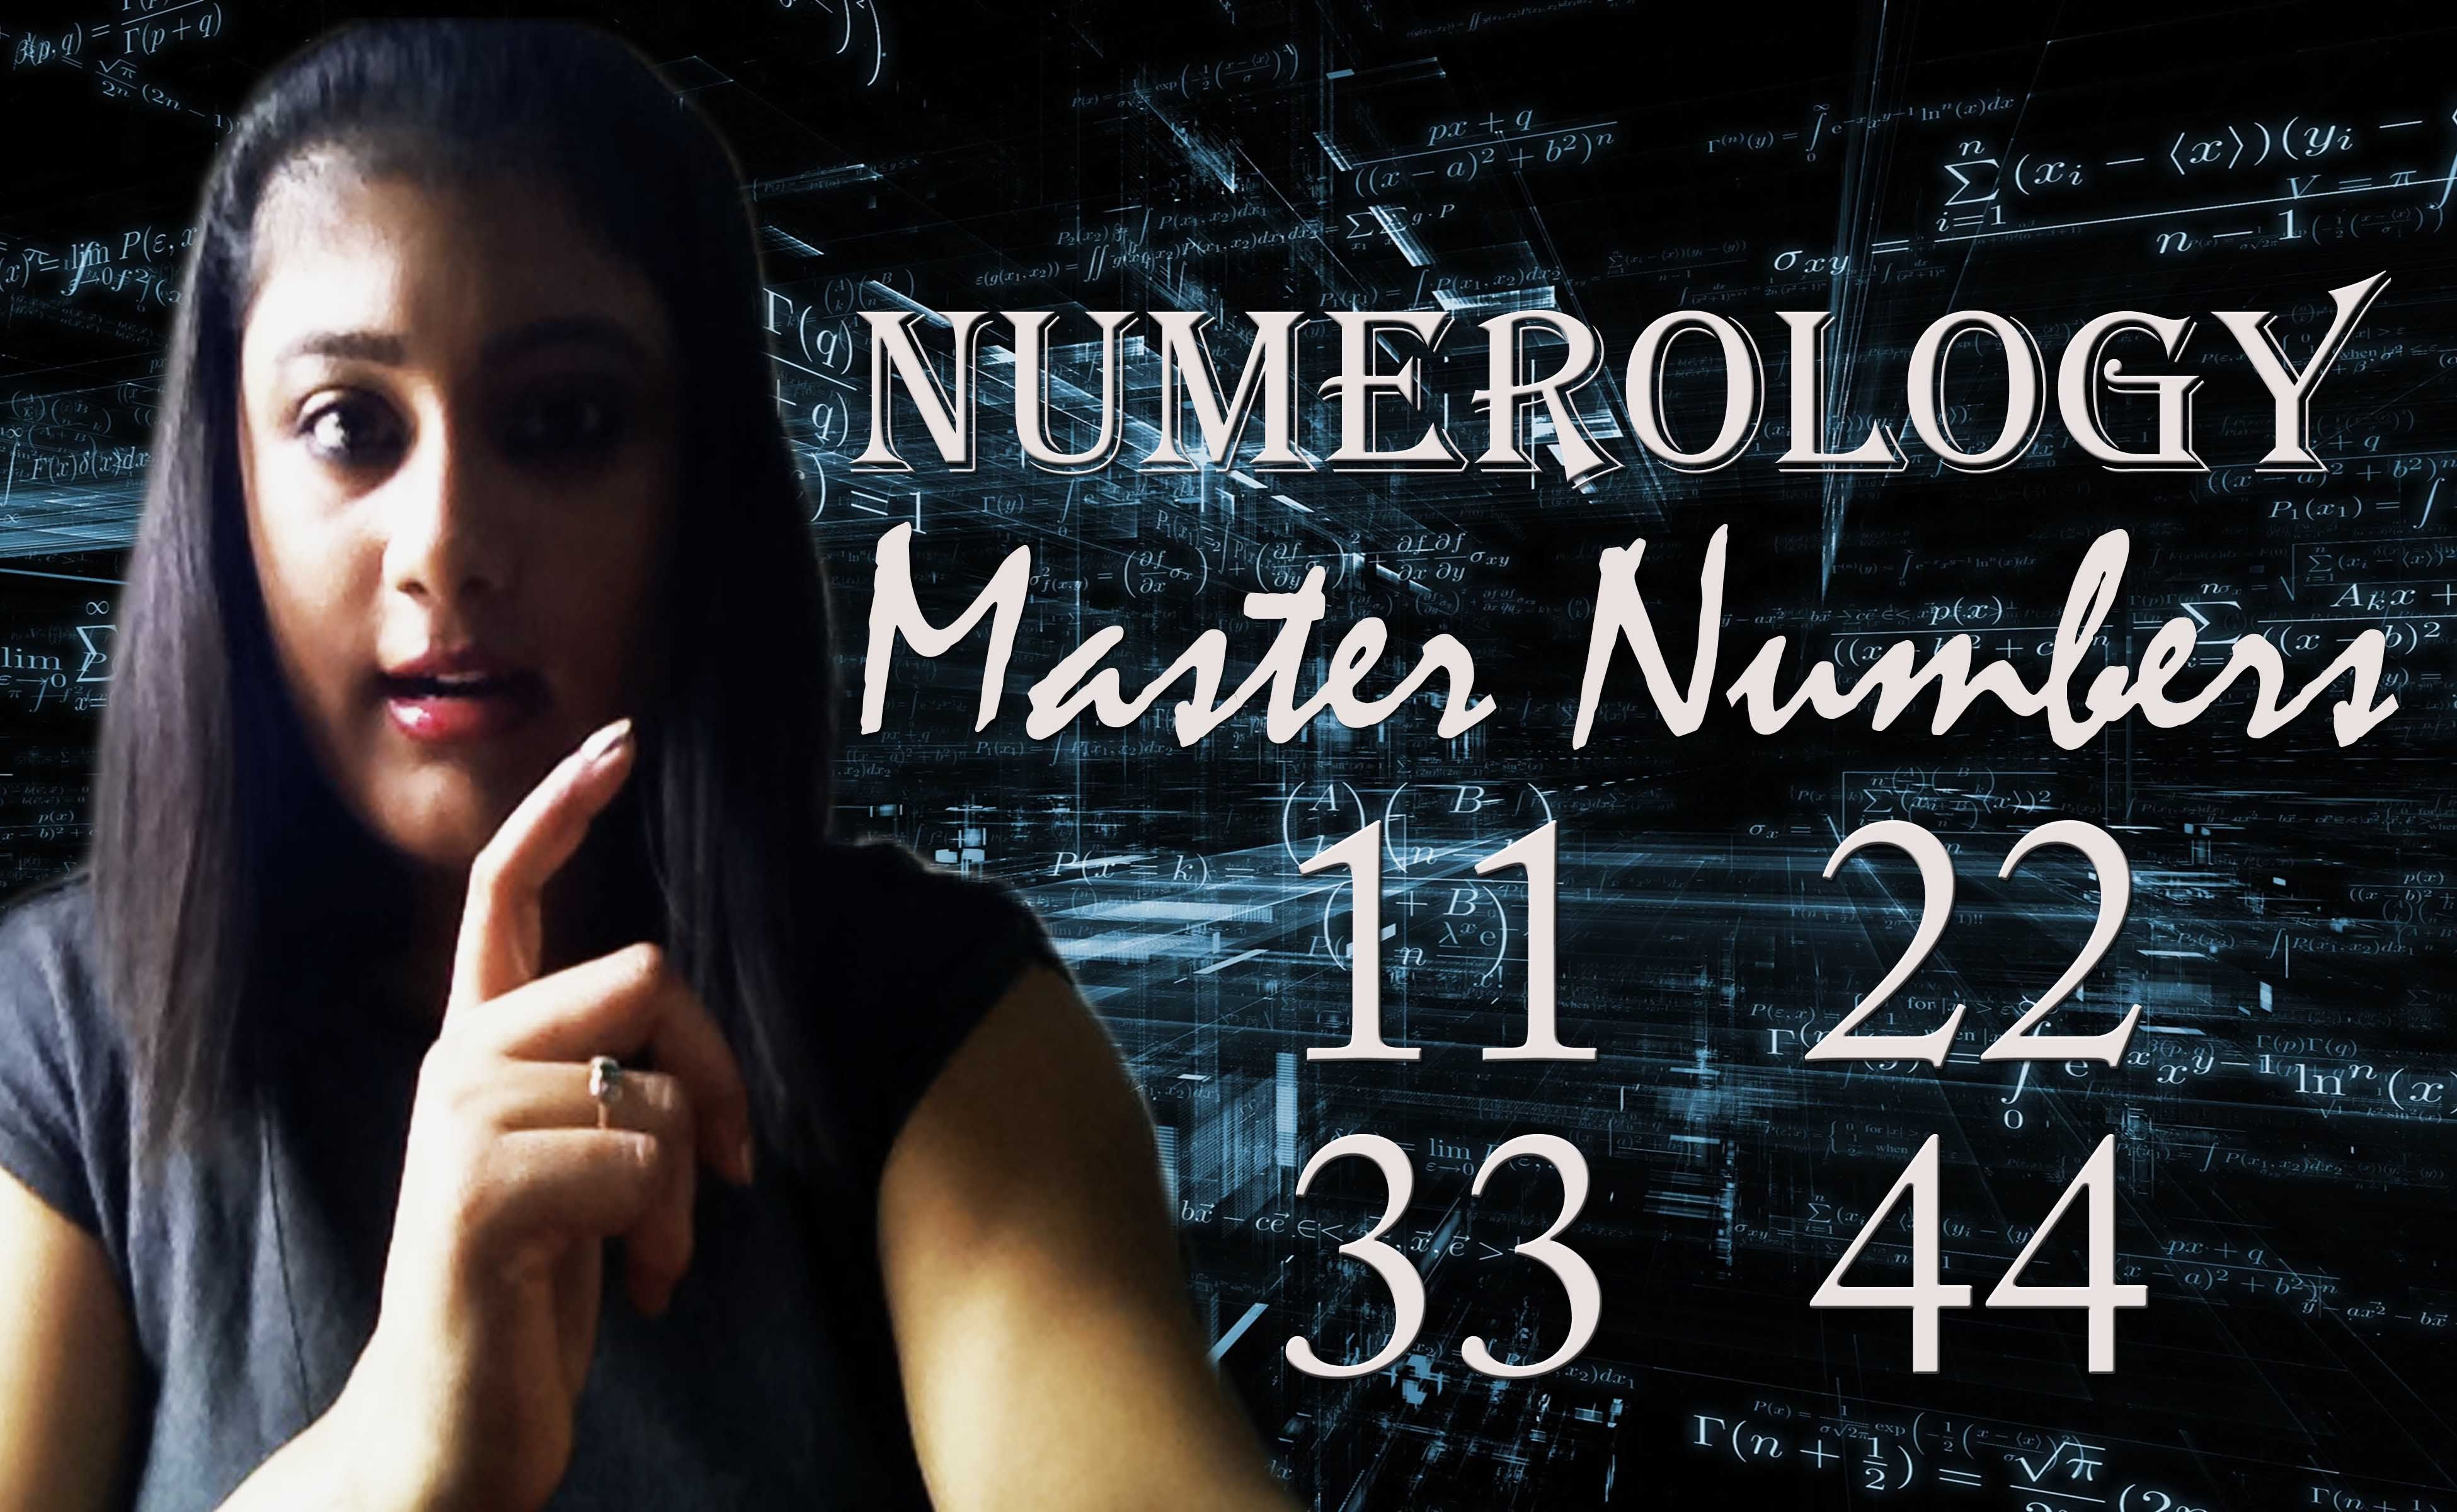 THE MASTER NUMBERS 11  22  33  44